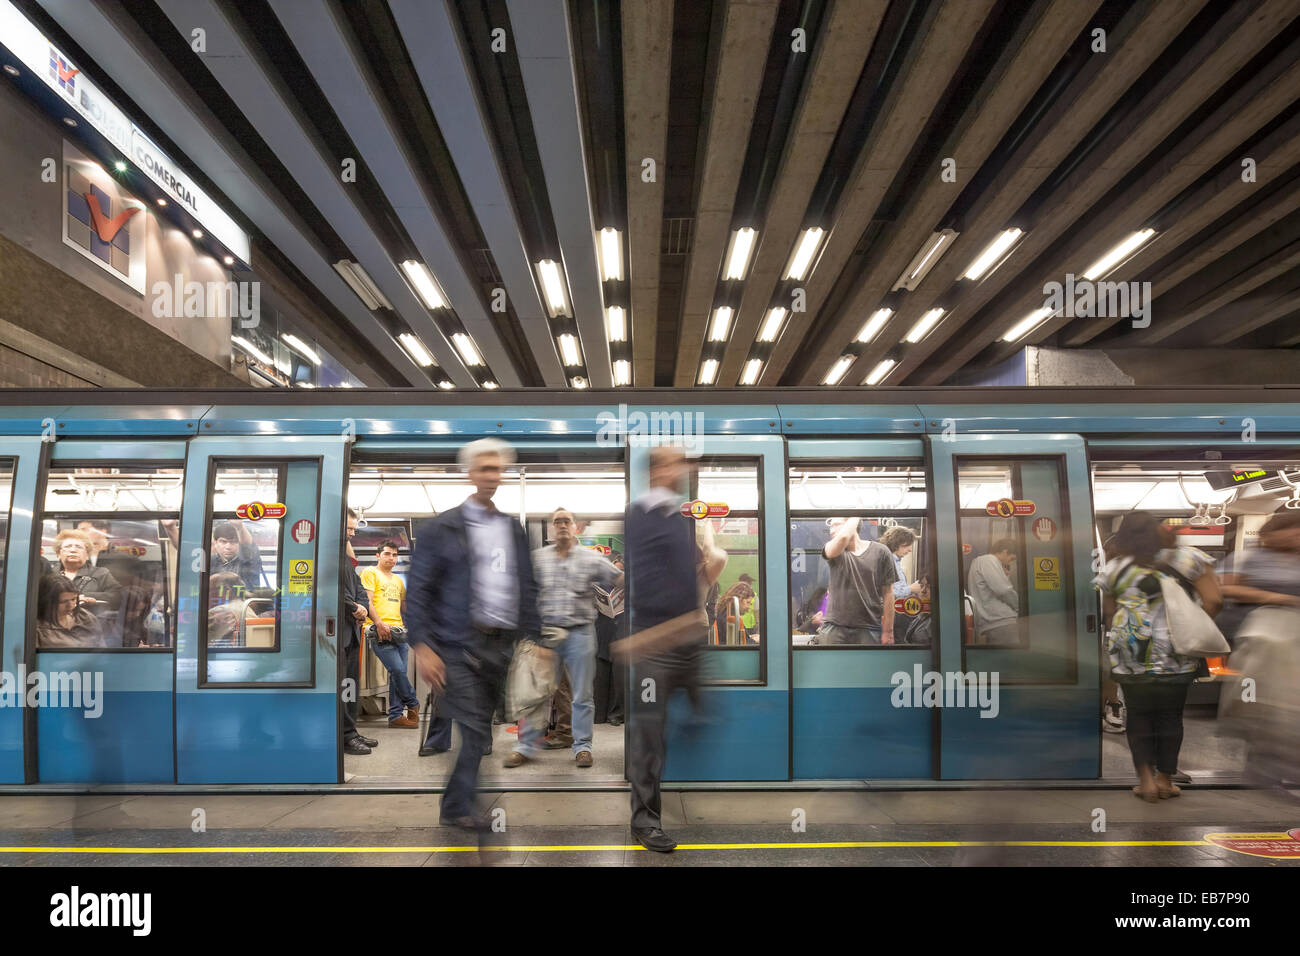 Santiago de Chile commuters leaving and entering Metro train in subway station during rush hour. - Stock Image